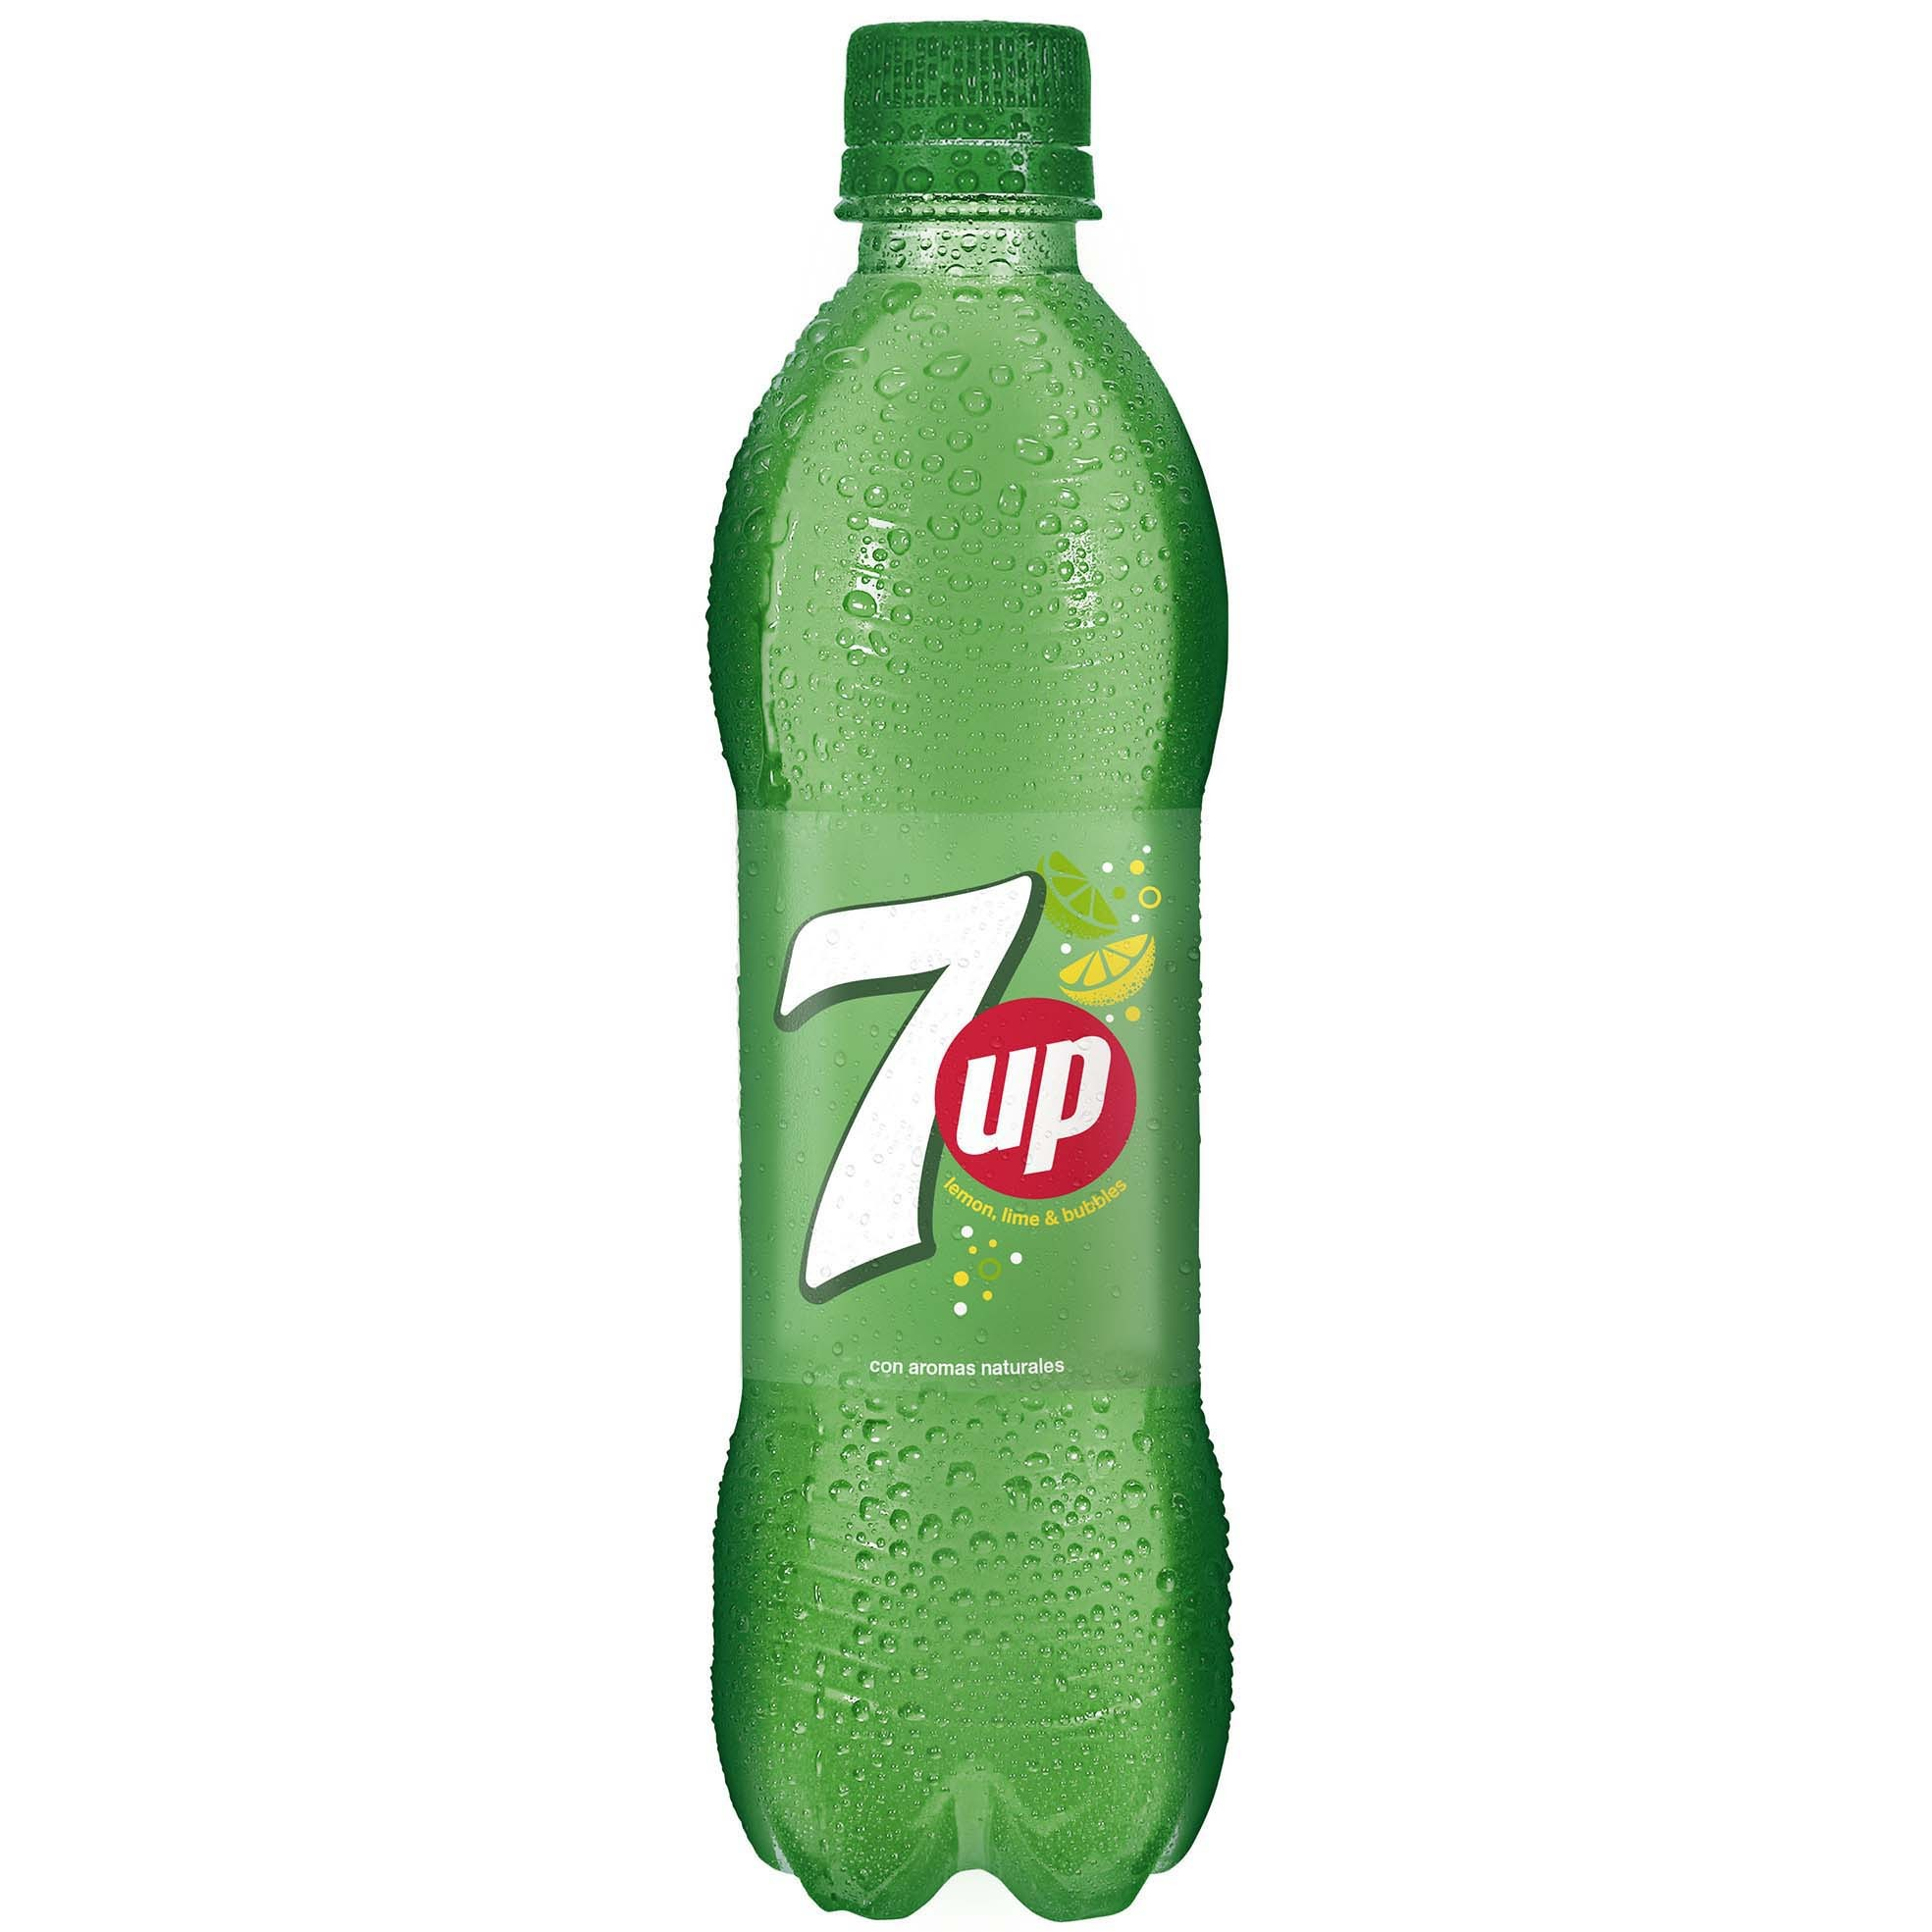 7up 7up regular 500ml pet de 50cl. en botella